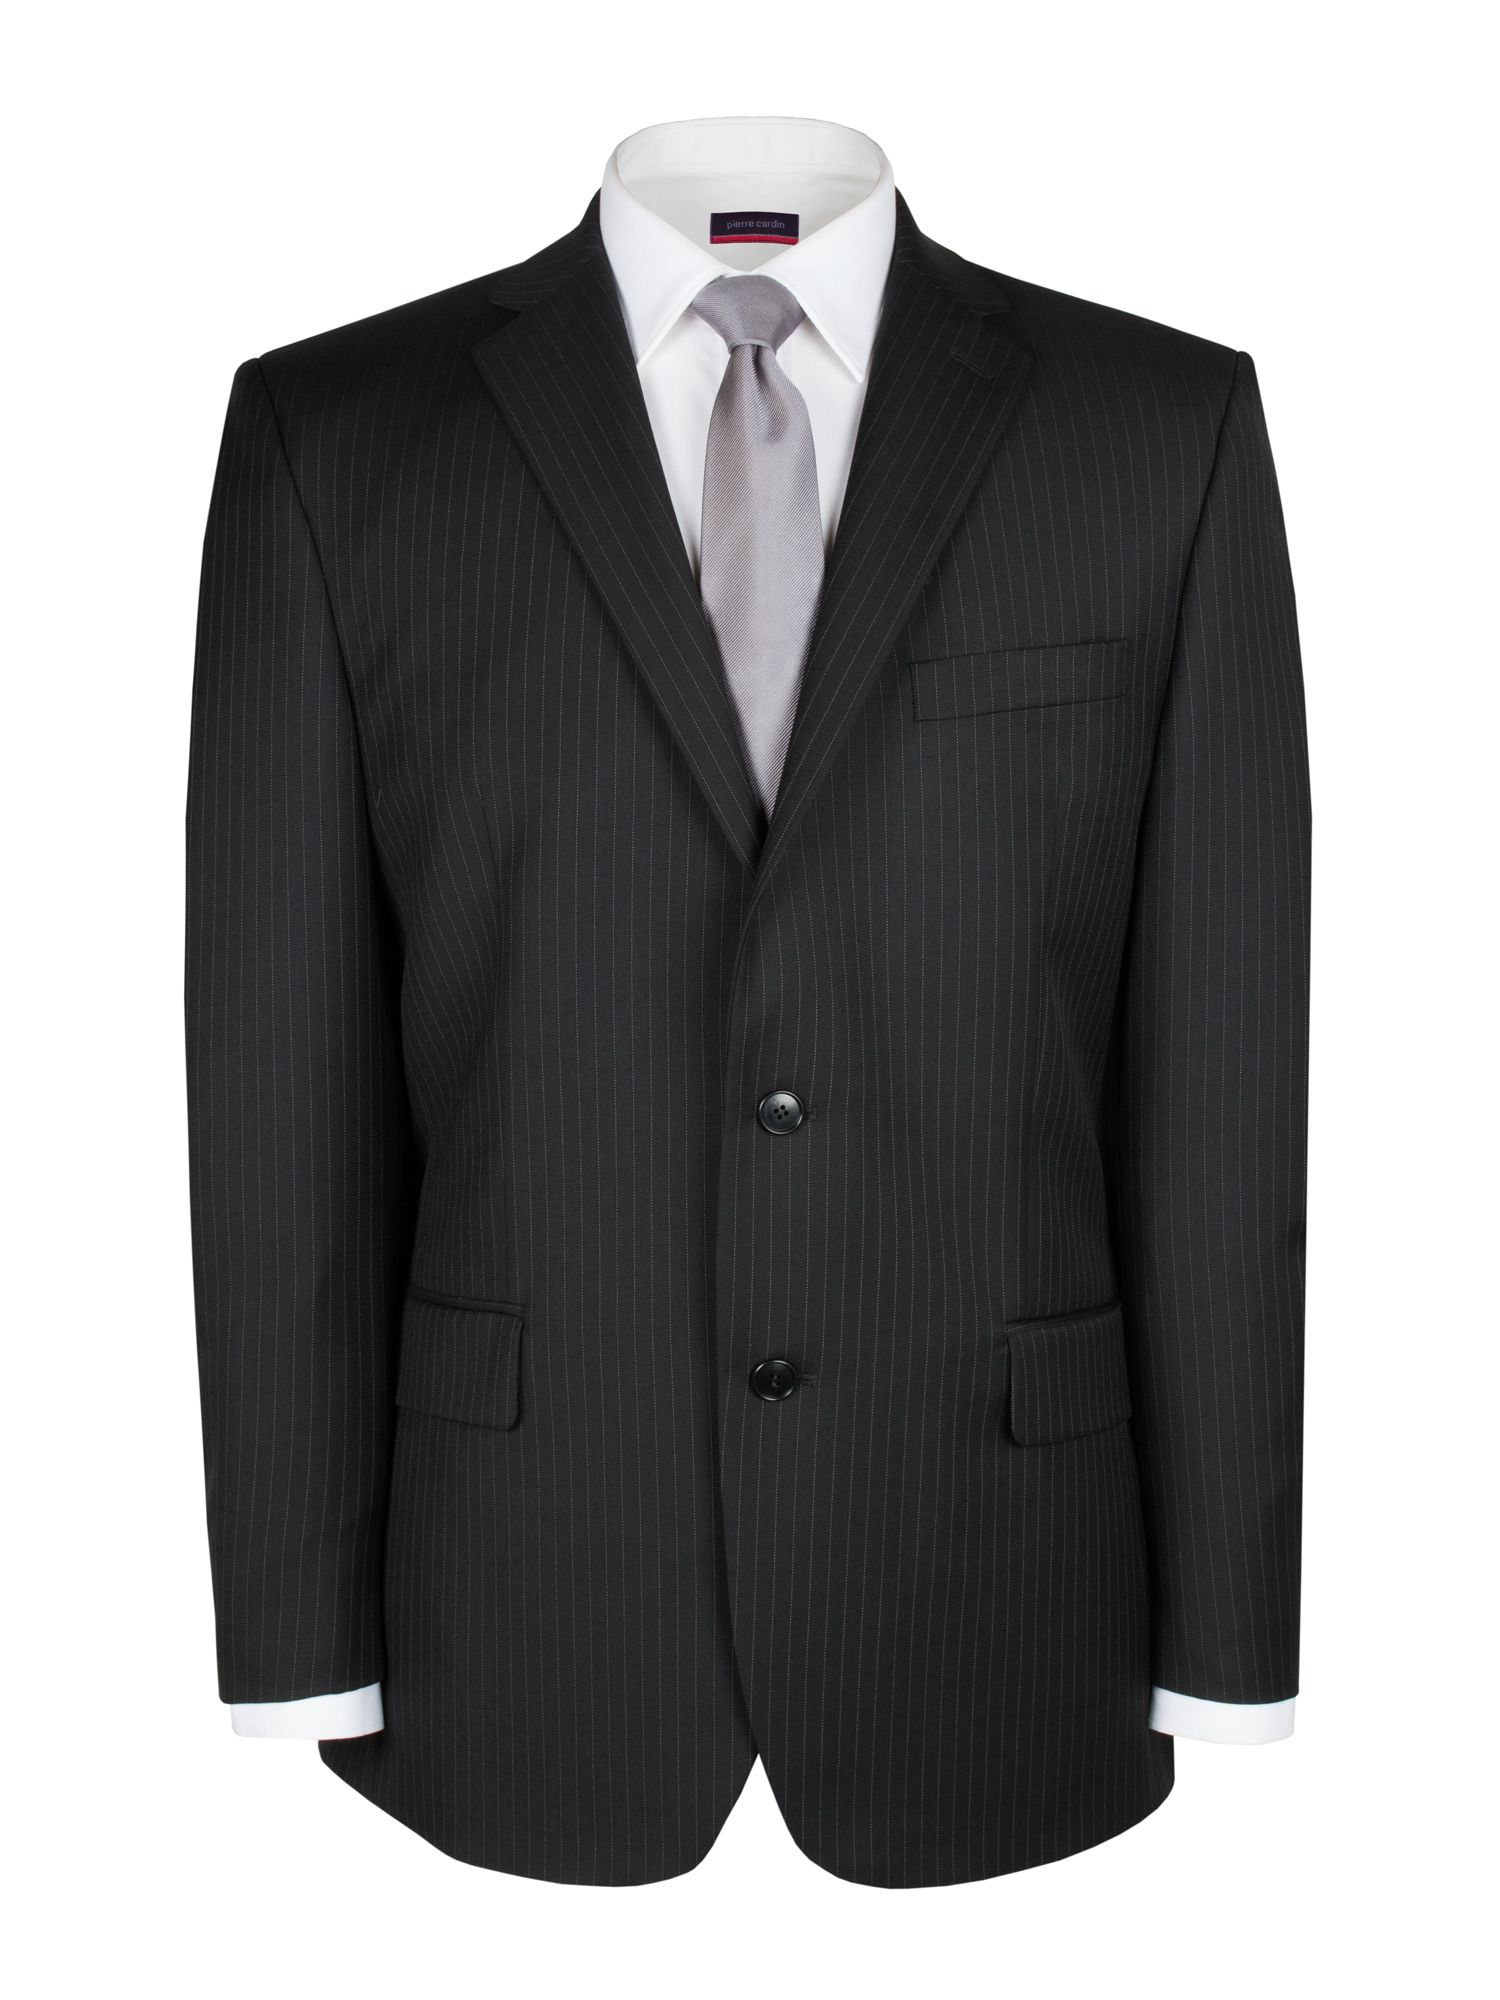 Black striped suit